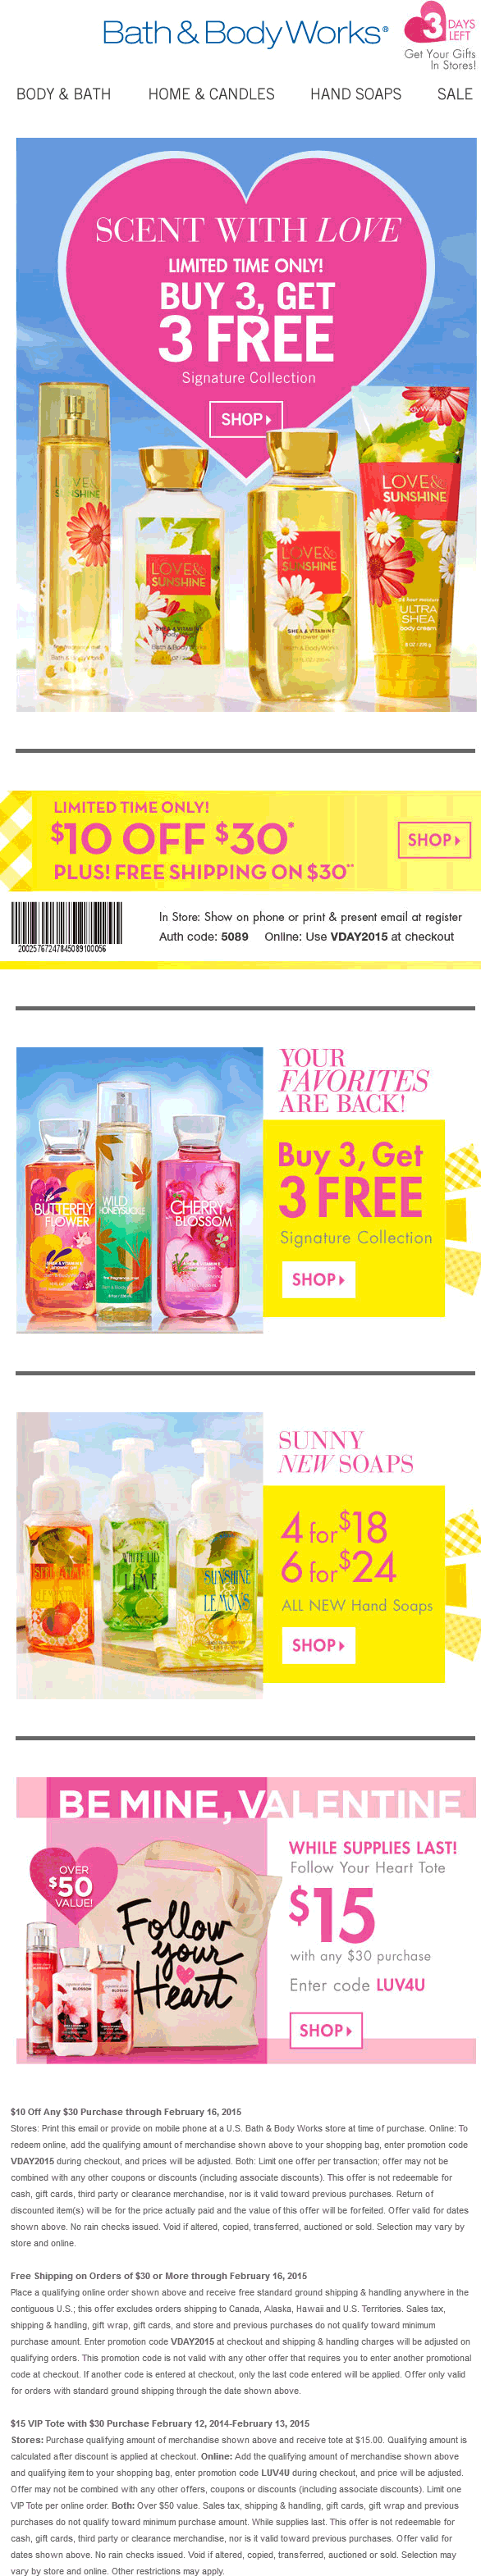 Bath & Body Works Coupon March 2017 $10 off $30 also 6-for-3 at Bath & Body Works, or online via promo code VDAY2015